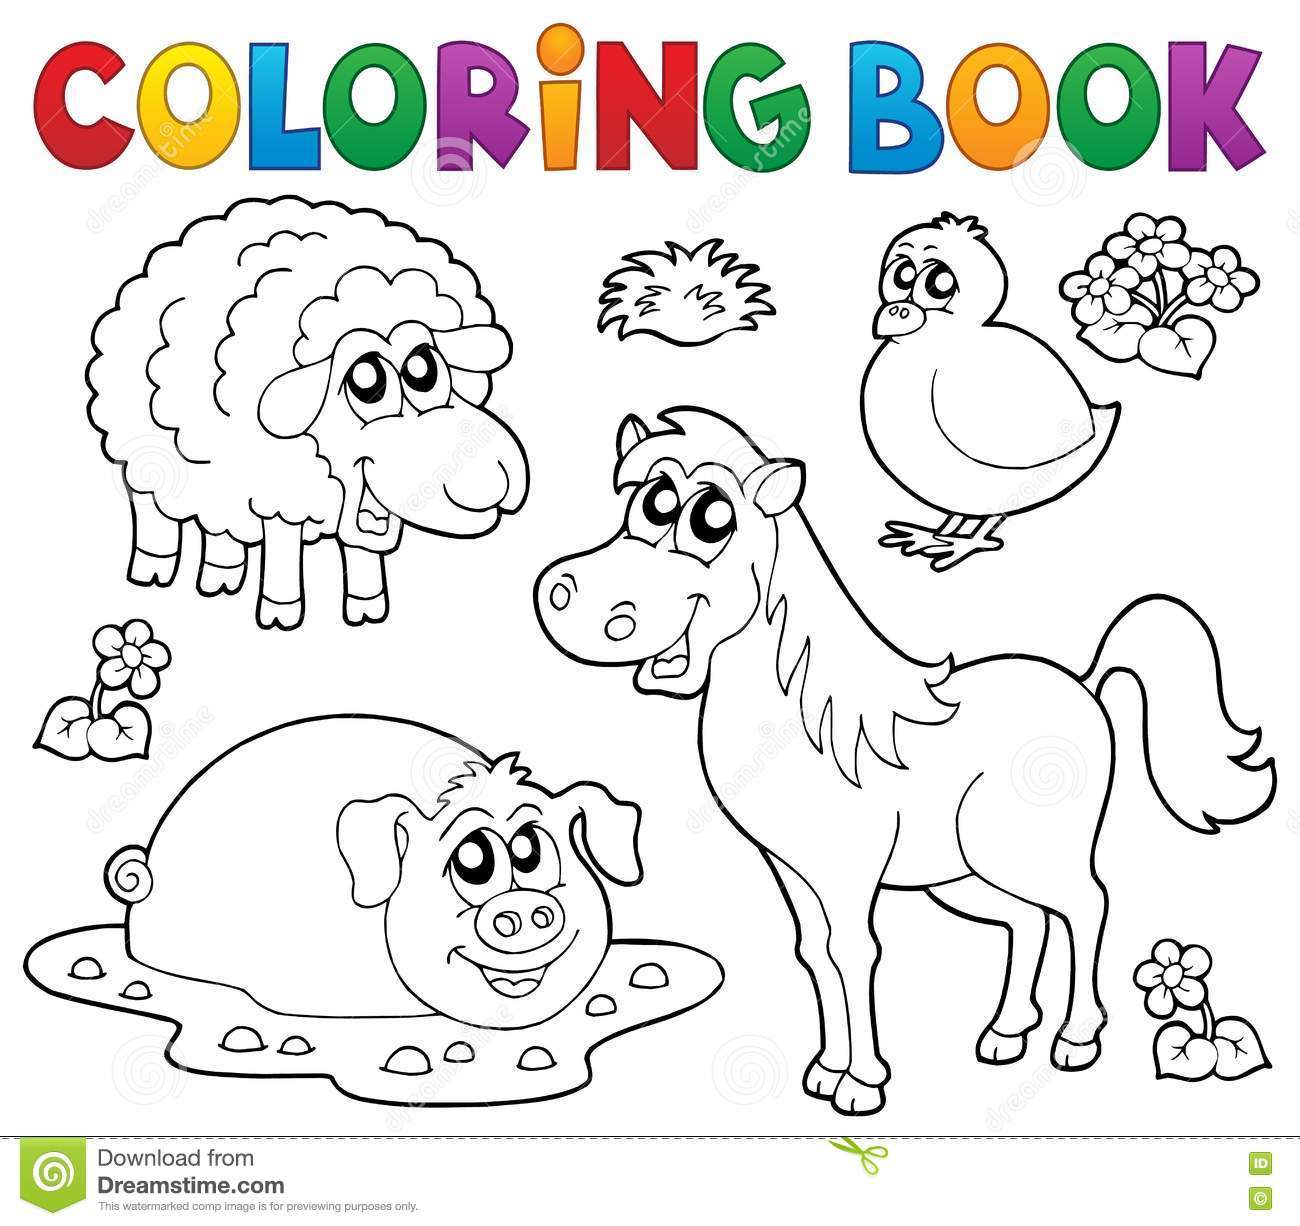 Royalty Free Vector Download Coloring Book With Farm Animals